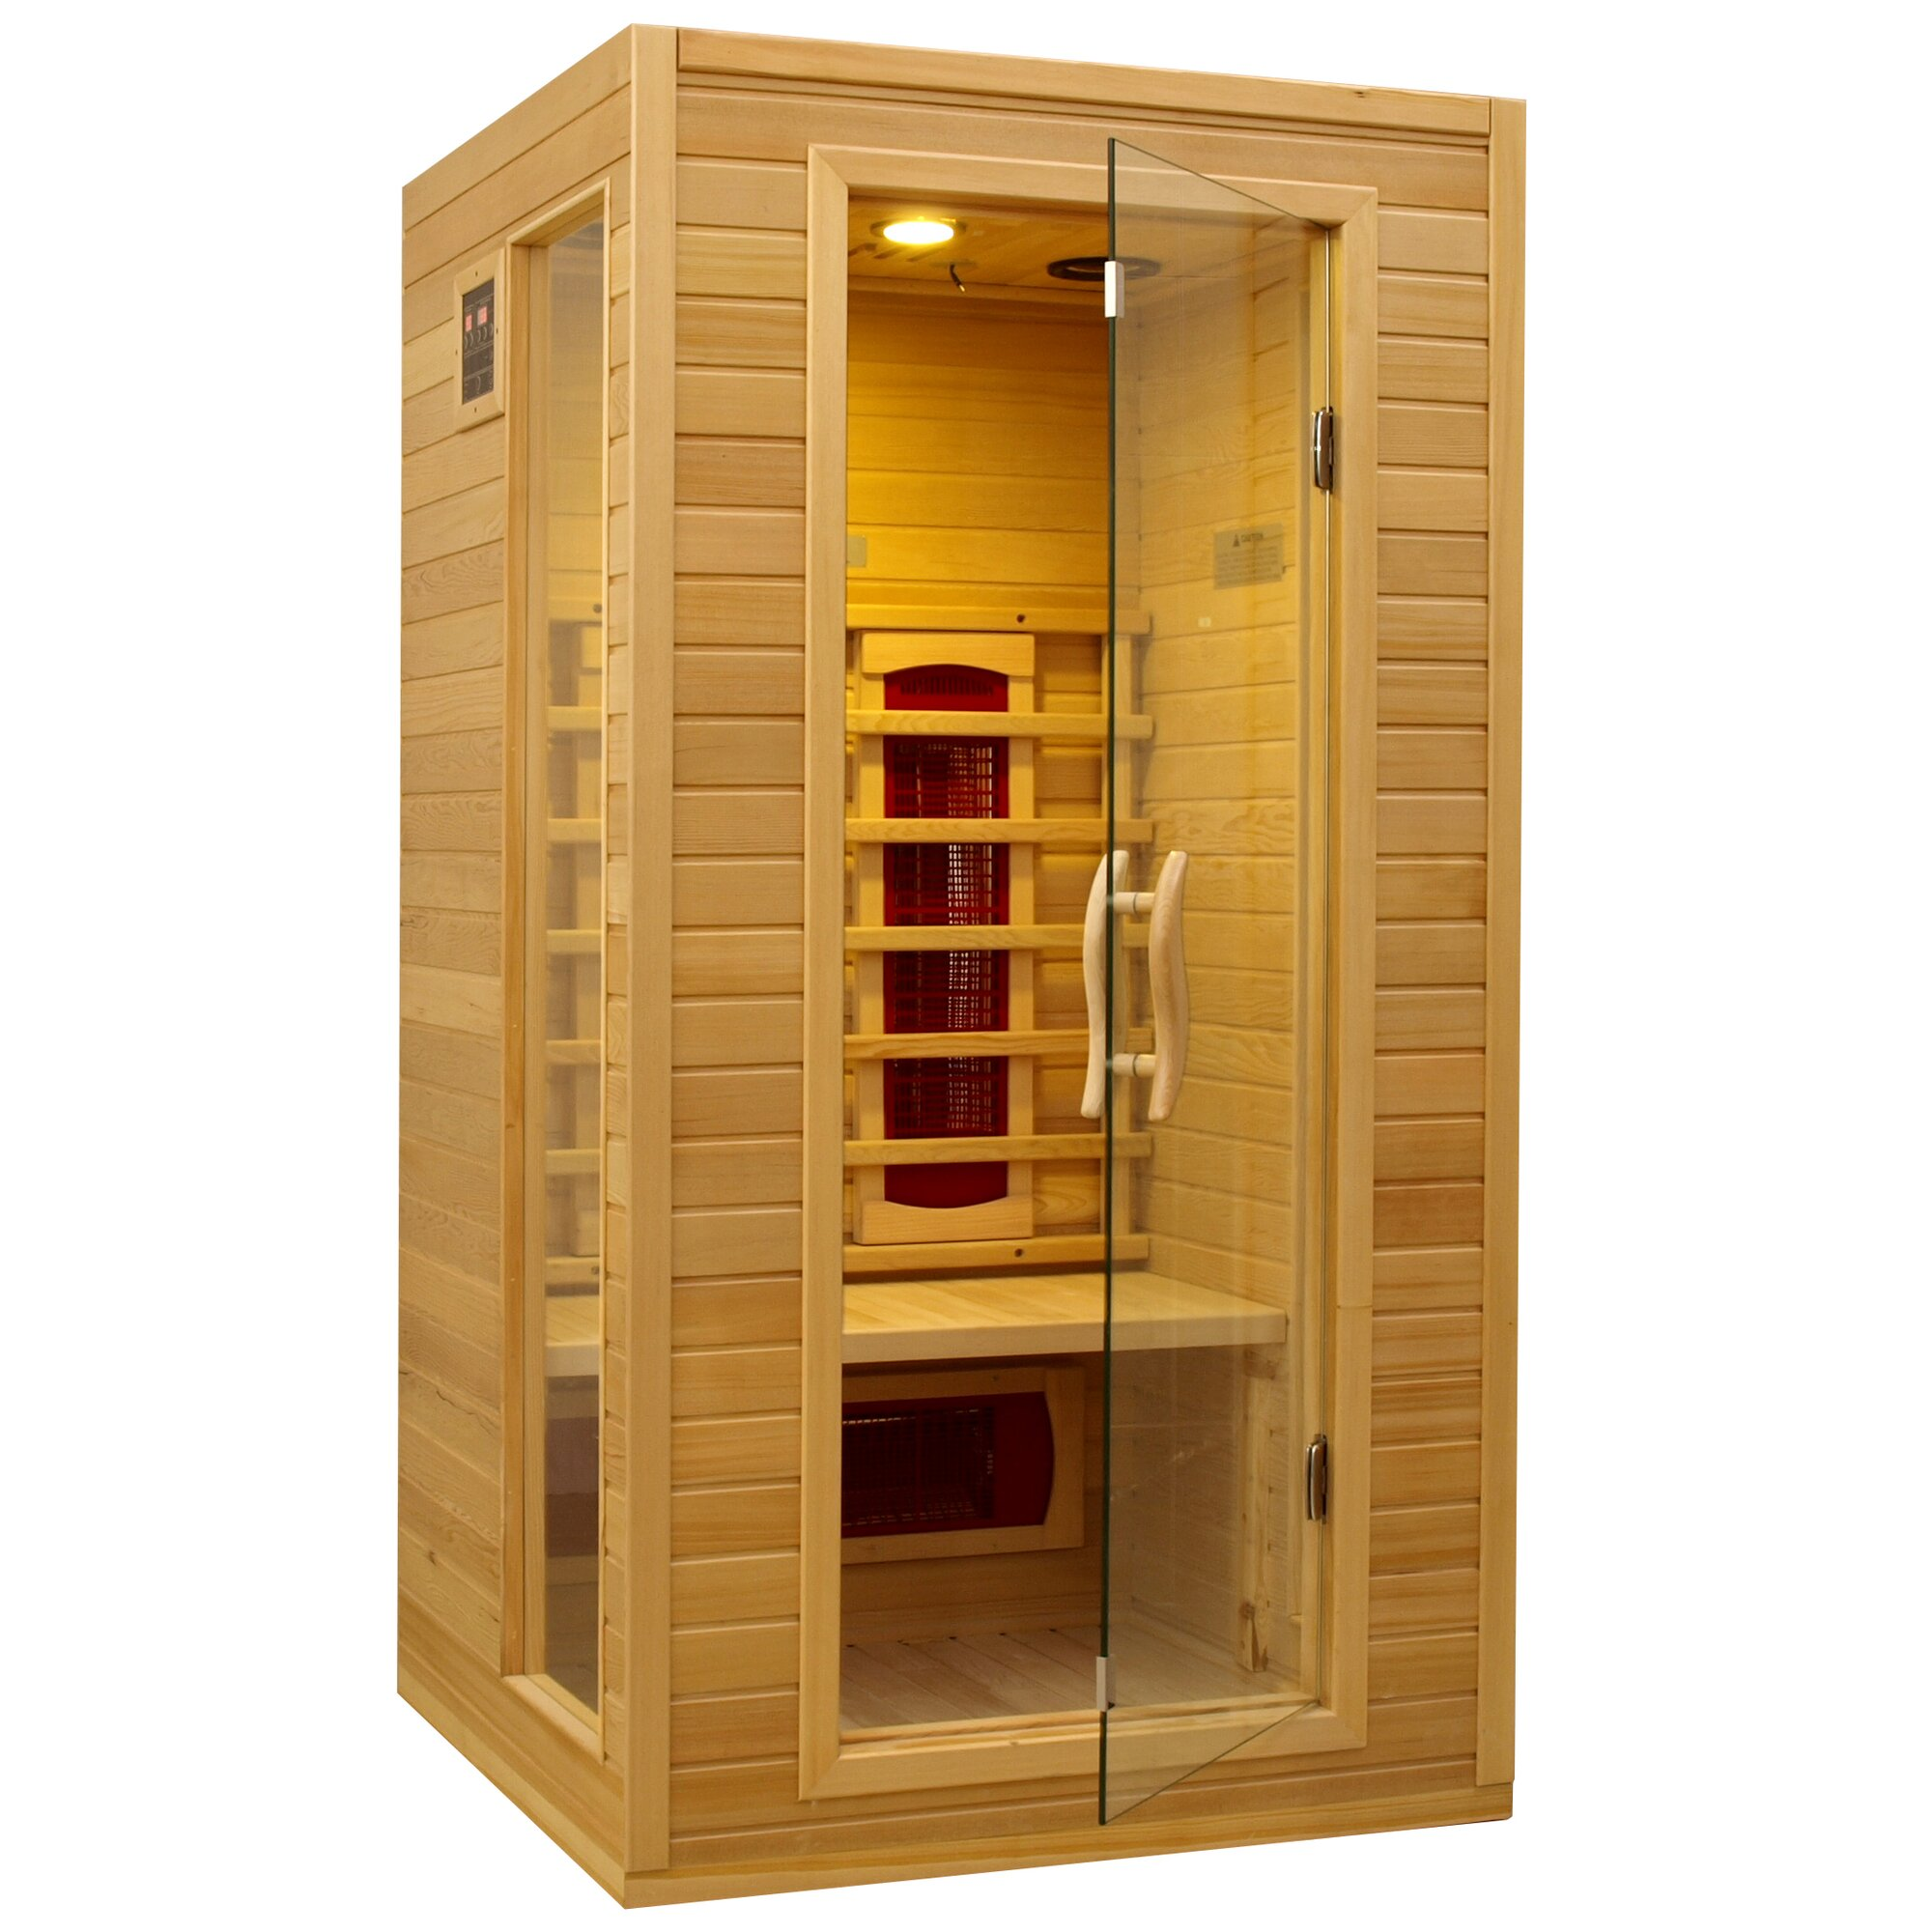 single person far infrared sauna Saunaray far-infrared medical grade handcrafted sauna made in collingwood, ontario, canada from all natural materials trusted by doctors sweat therapy.